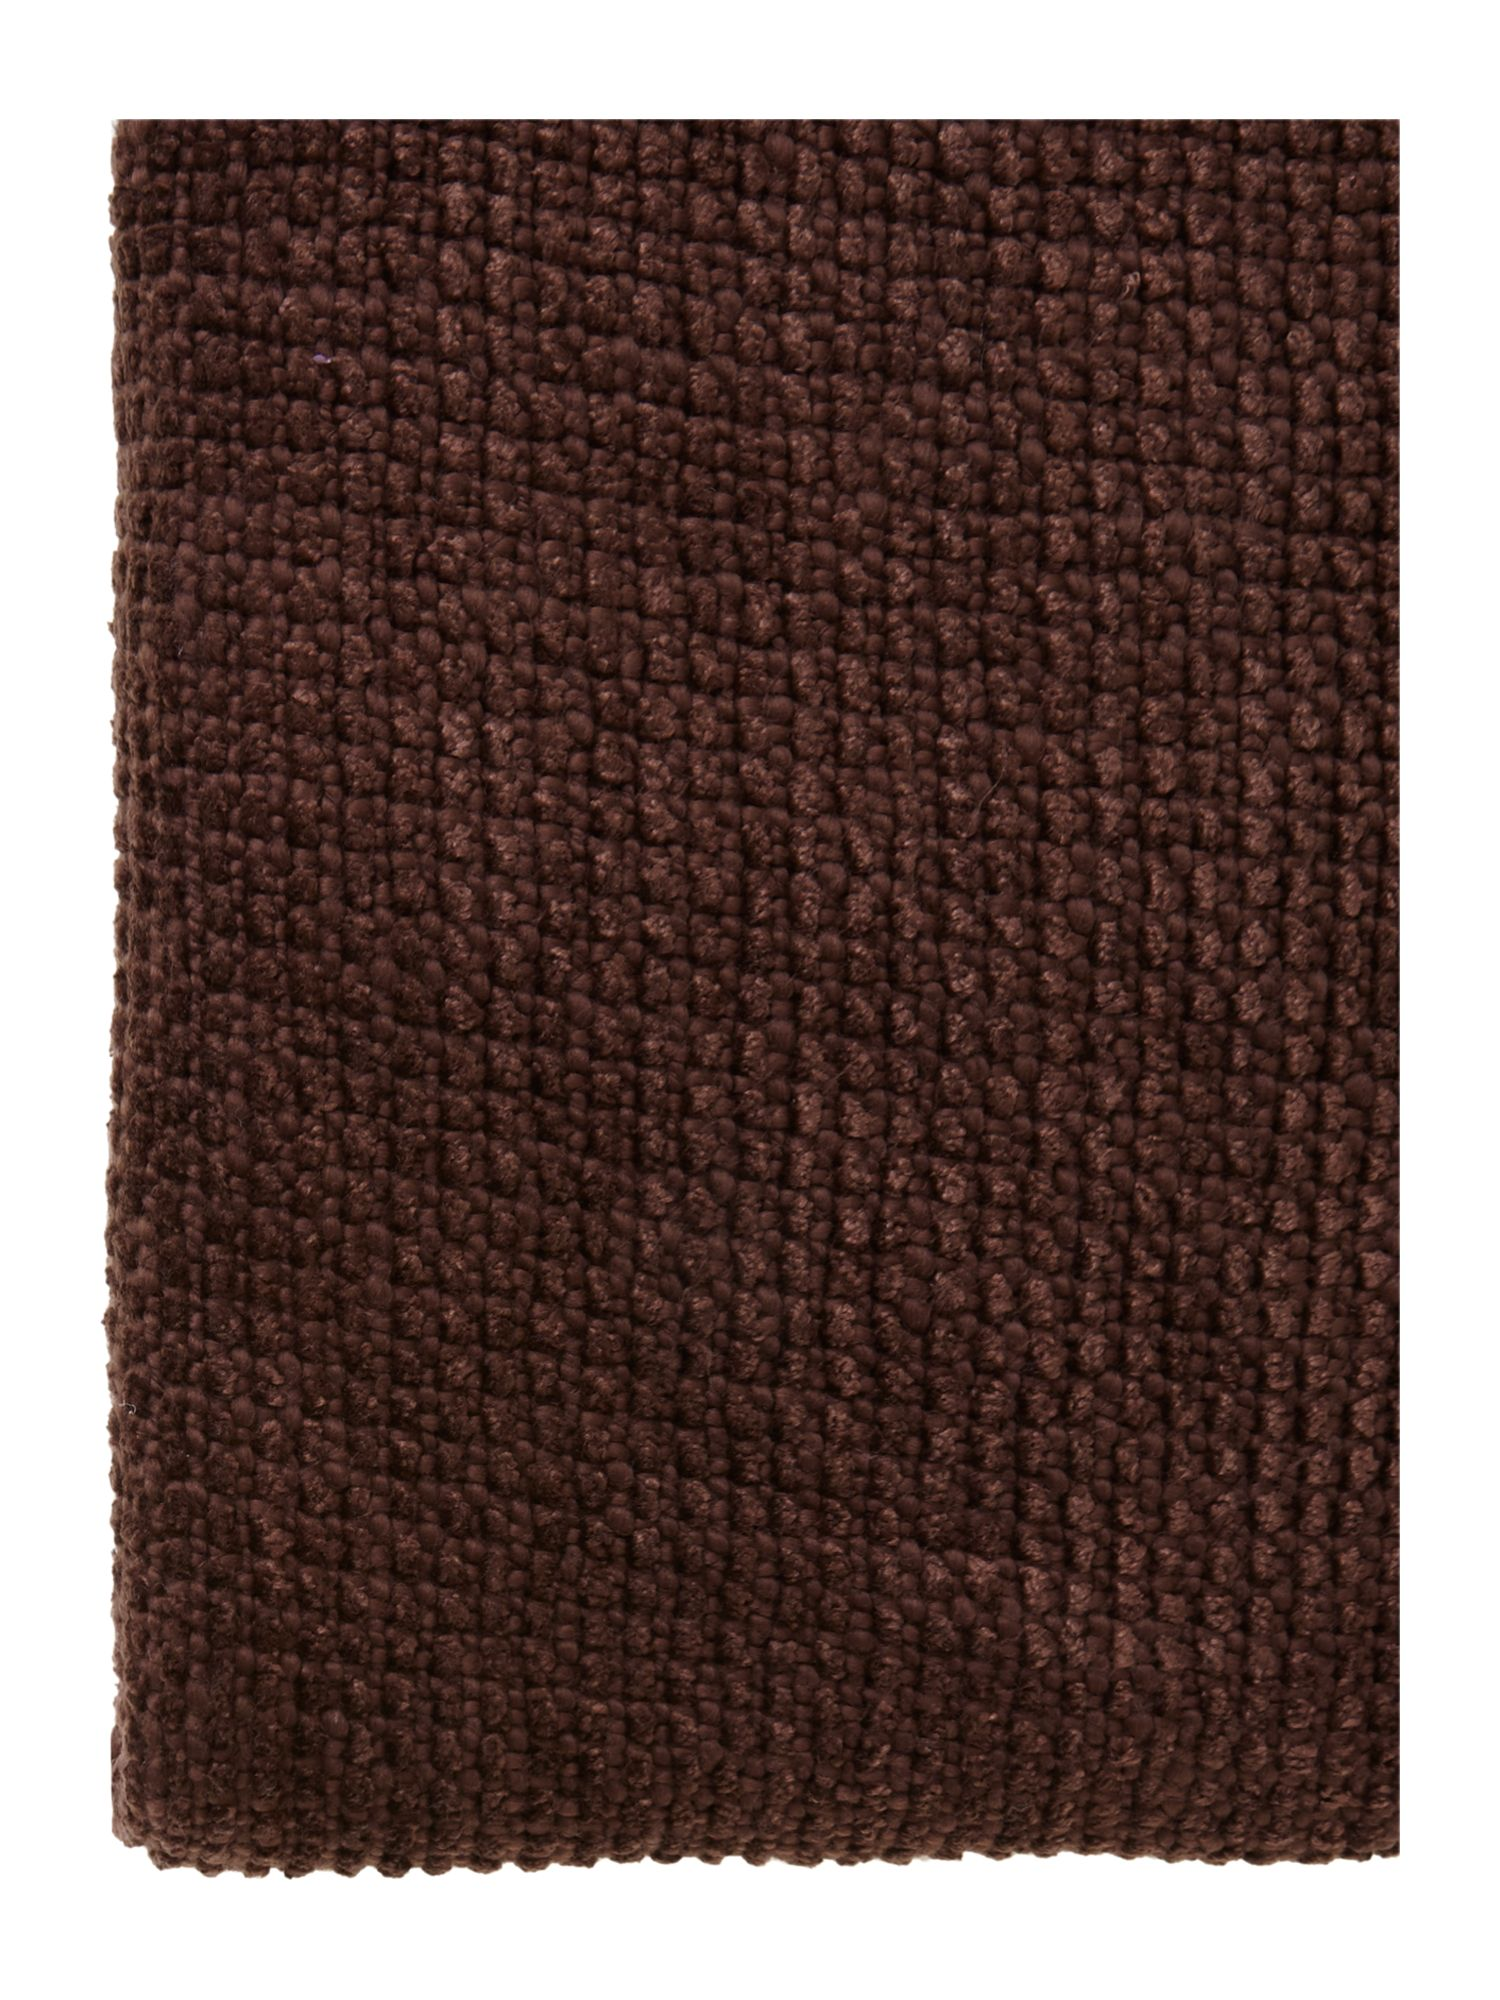 Brown chenille throw